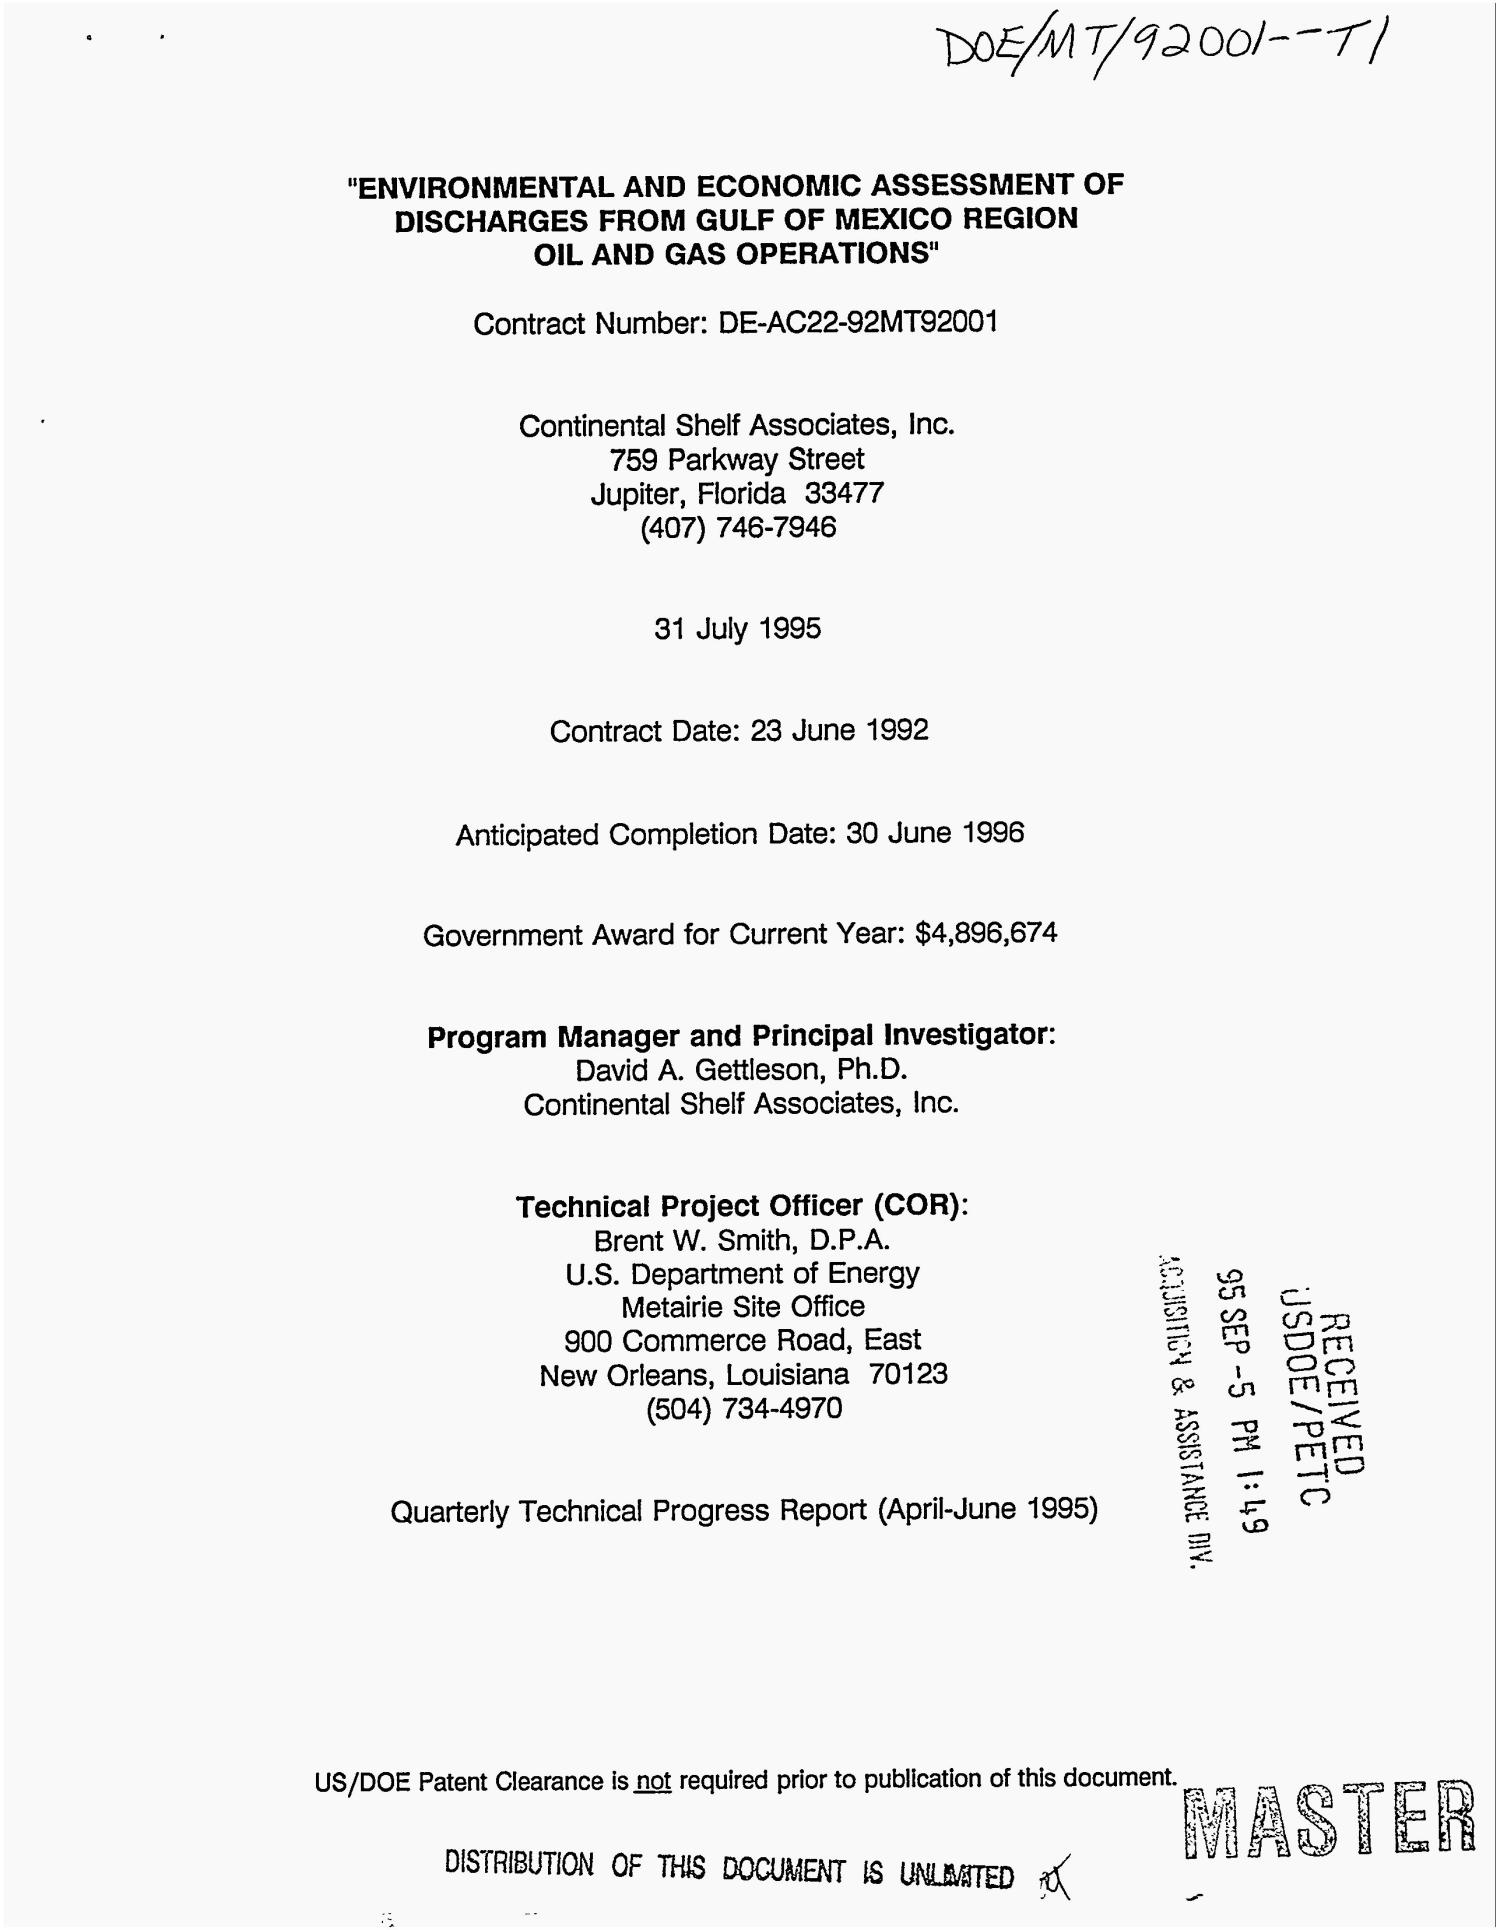 Environmental and economic assessment of discharges from Gulf of Mexico region oil and gas operations. Quarterly technical progress report, April 1995--June 1995                                                                                                      [Sequence #]: 1 of 9